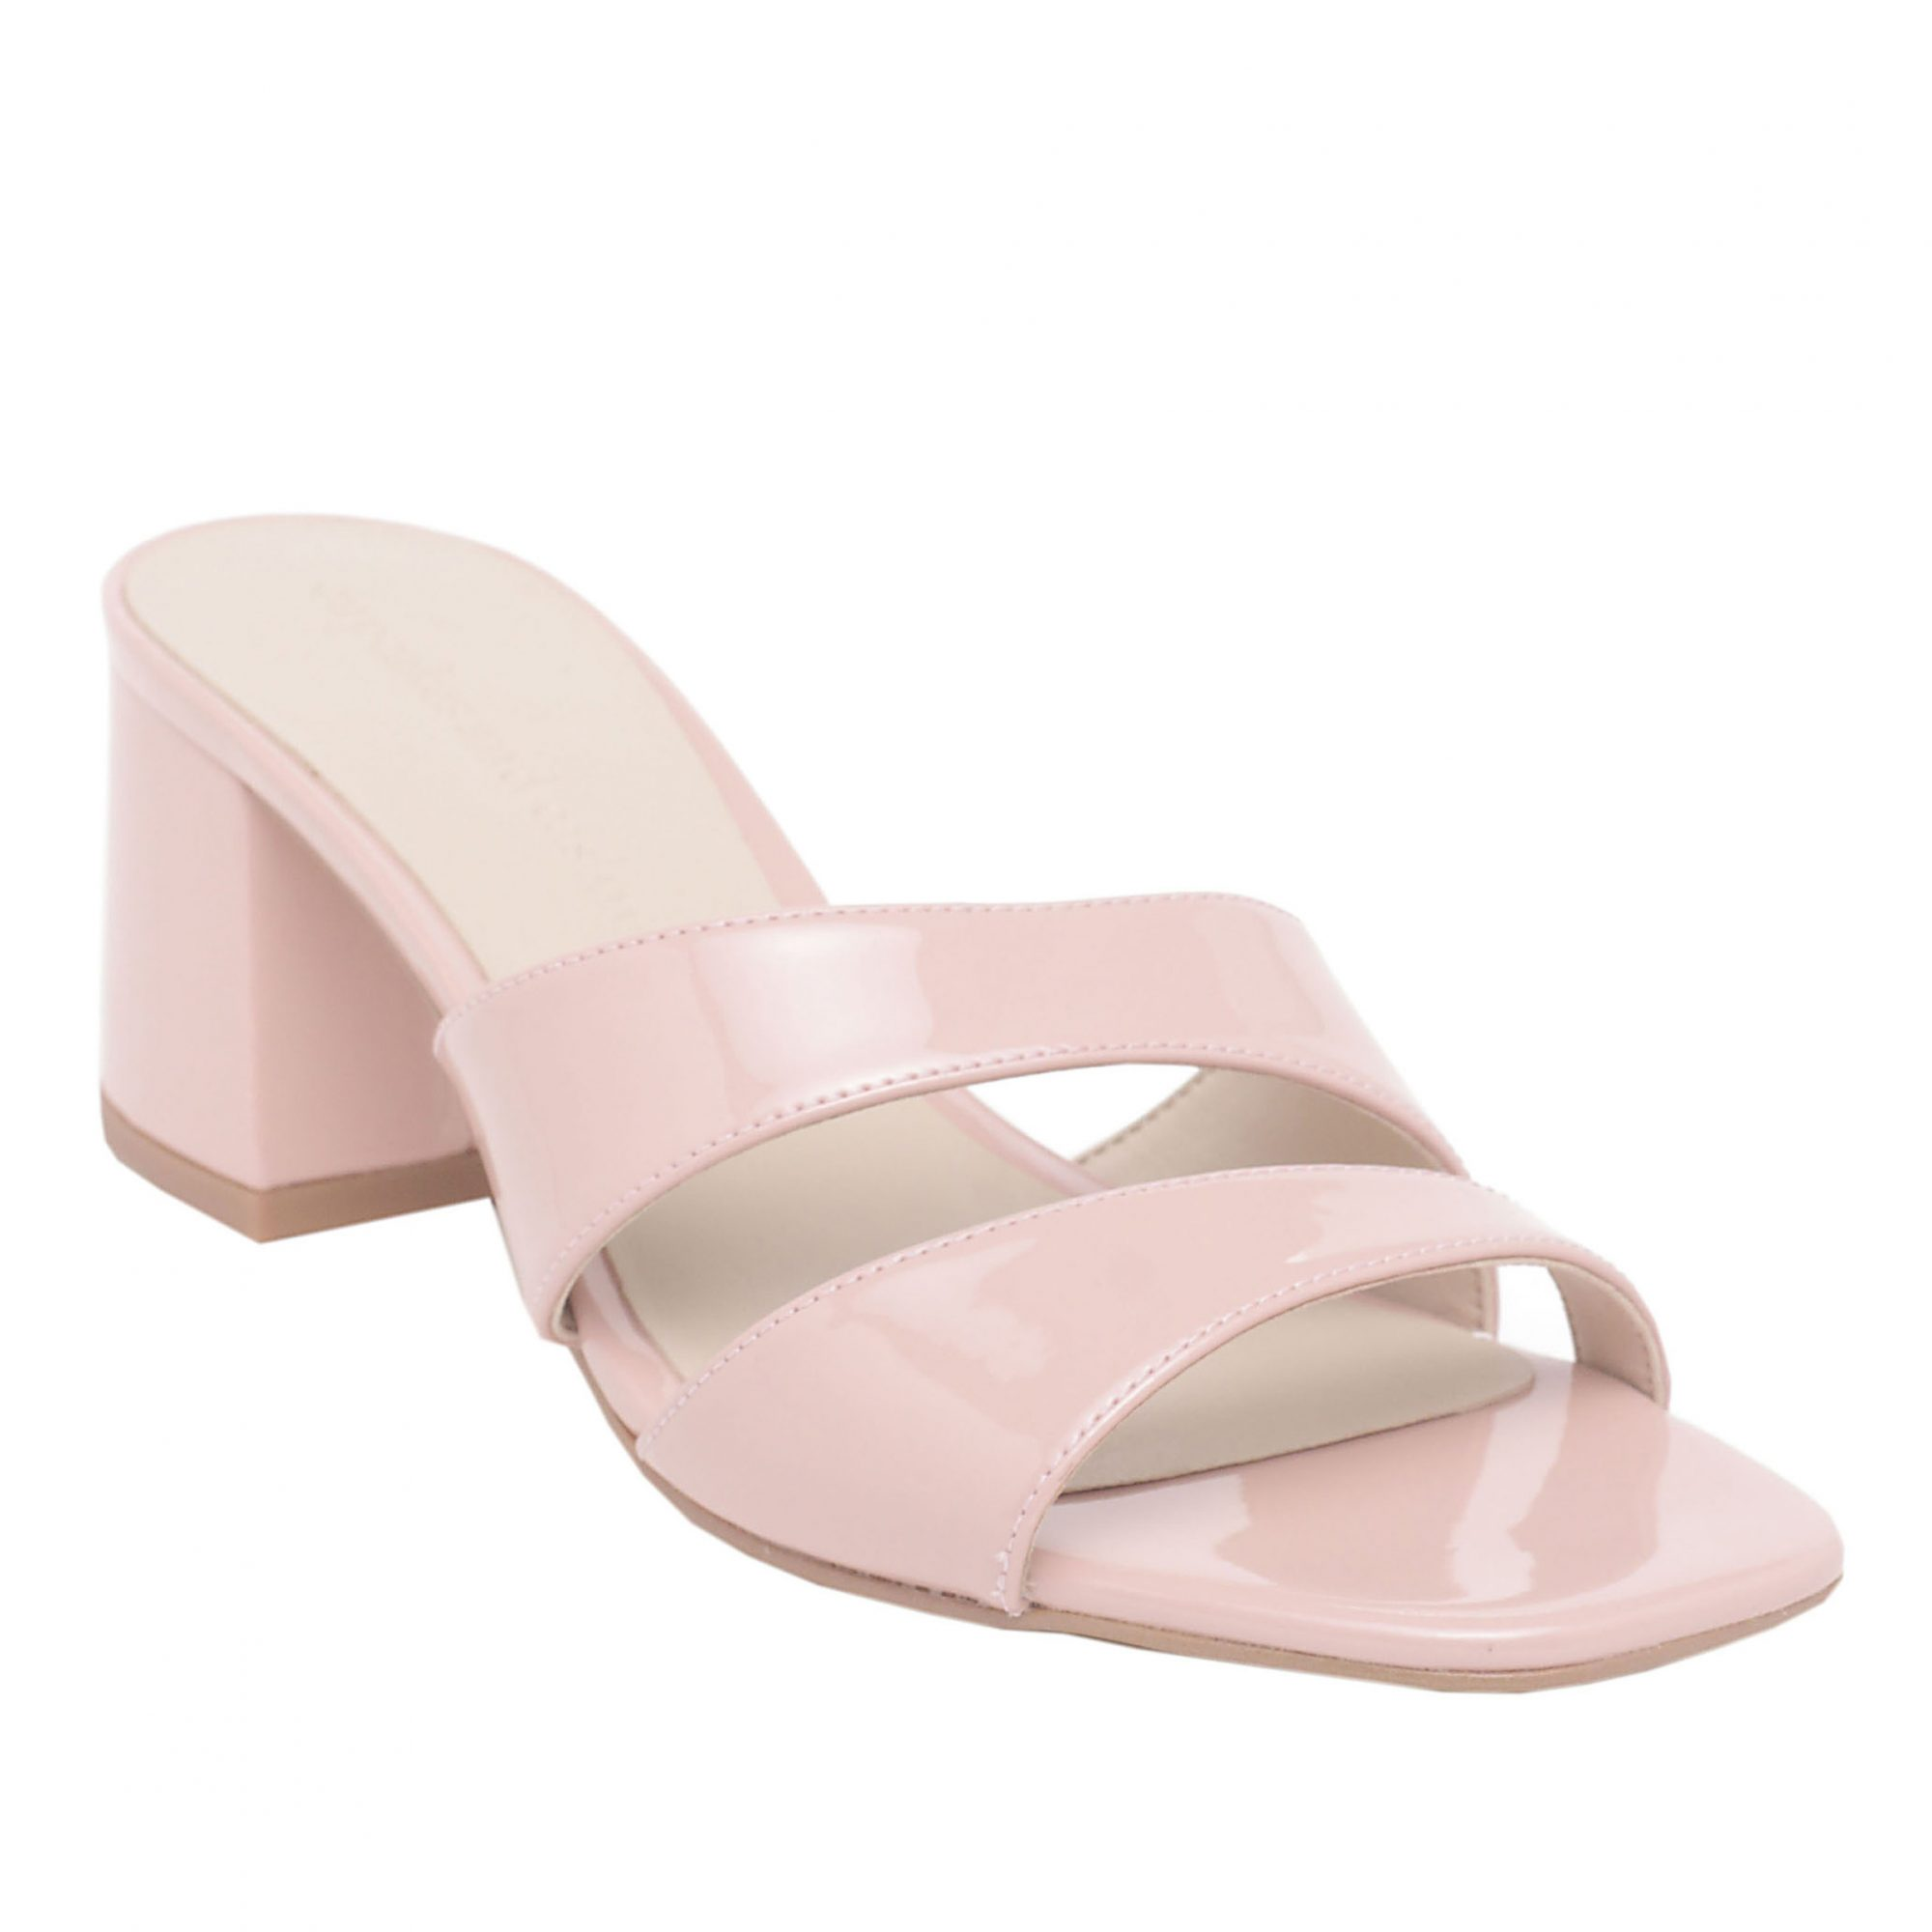 Pink heeled sandal from Cupcakes and Cashmere shoe collection at Nordstrom